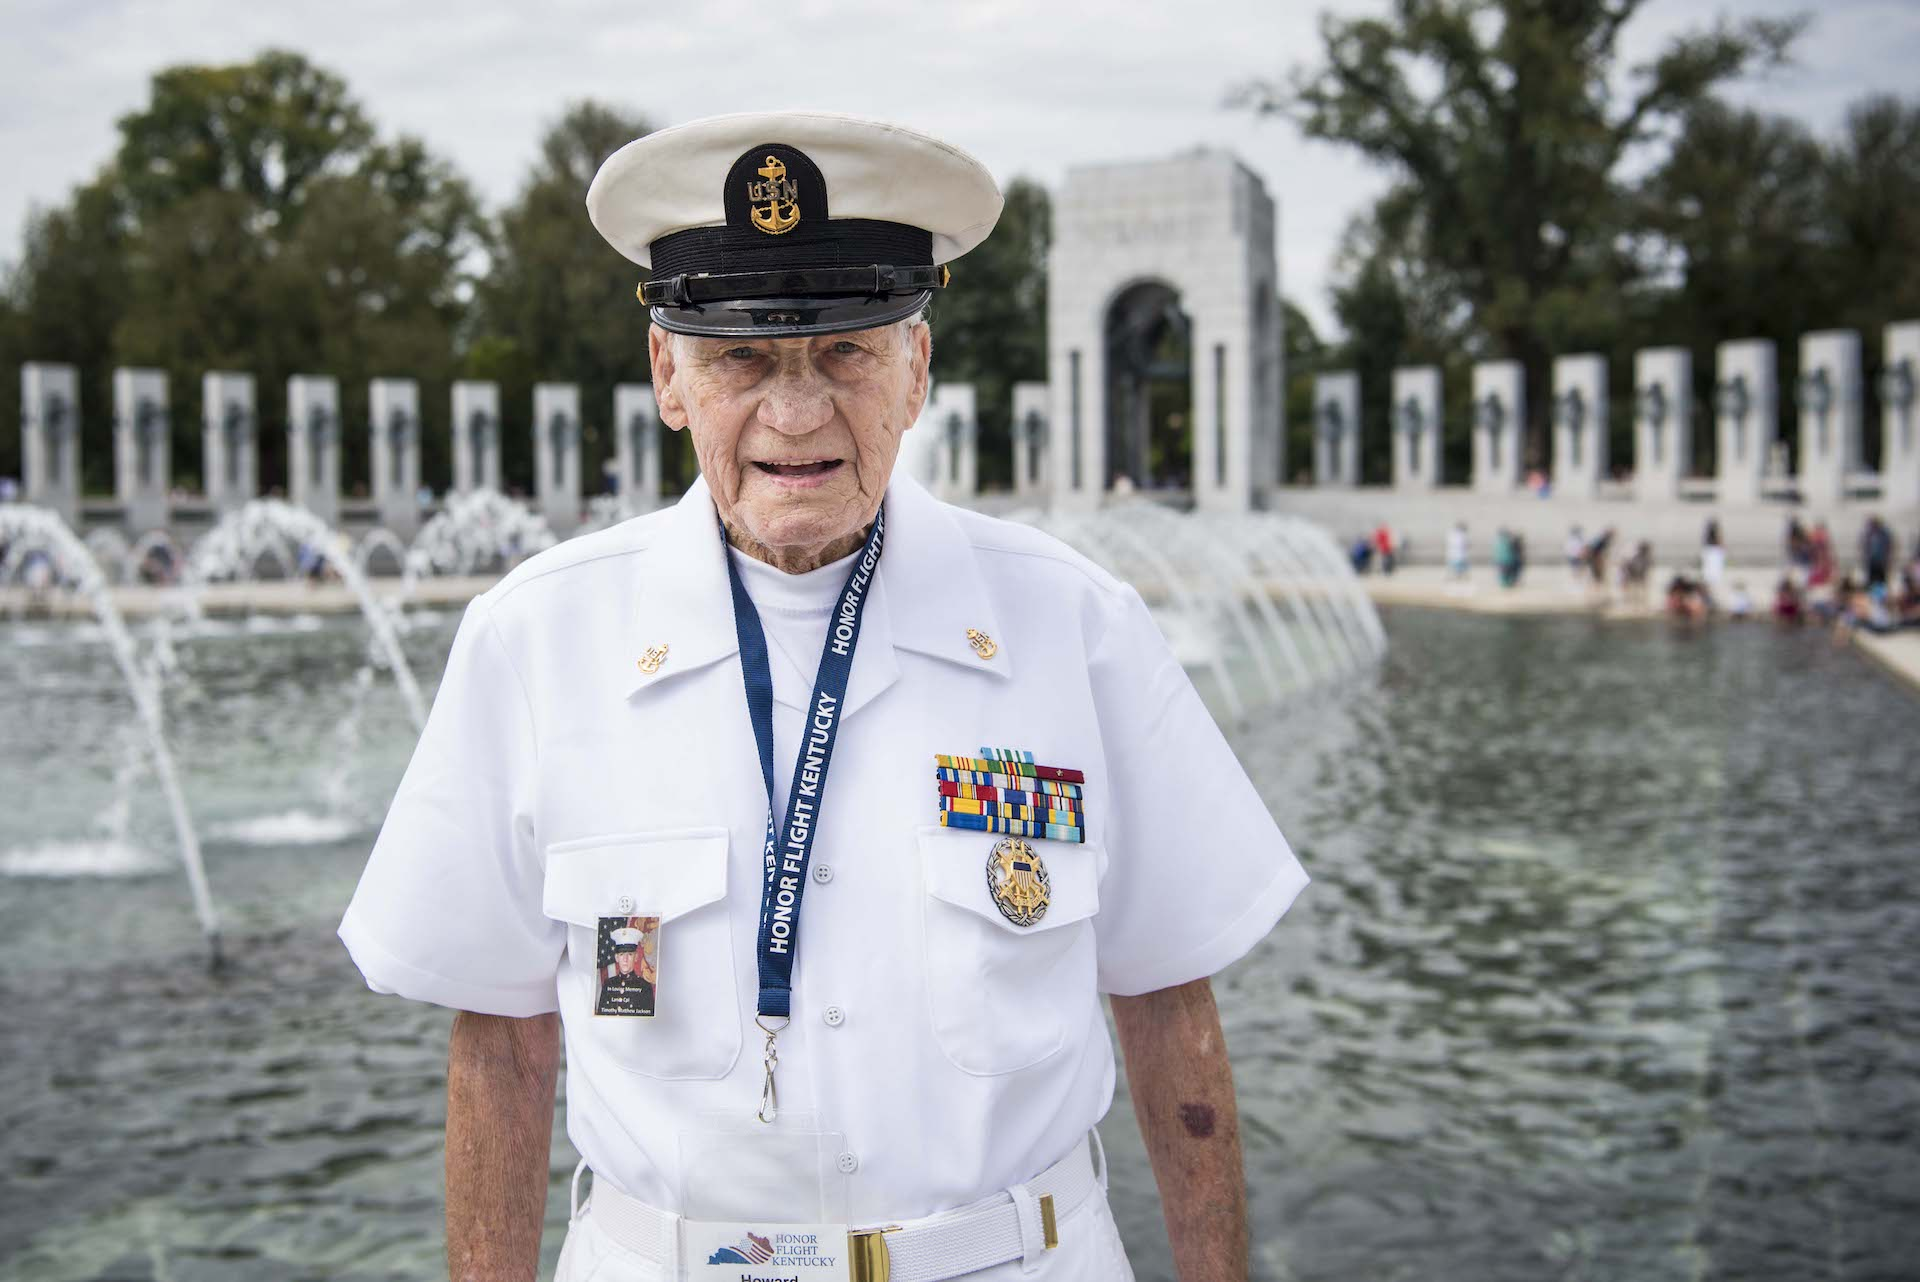 Howard smiles for a photo in his white Navy uniform in front of the World War II memorial fountain.